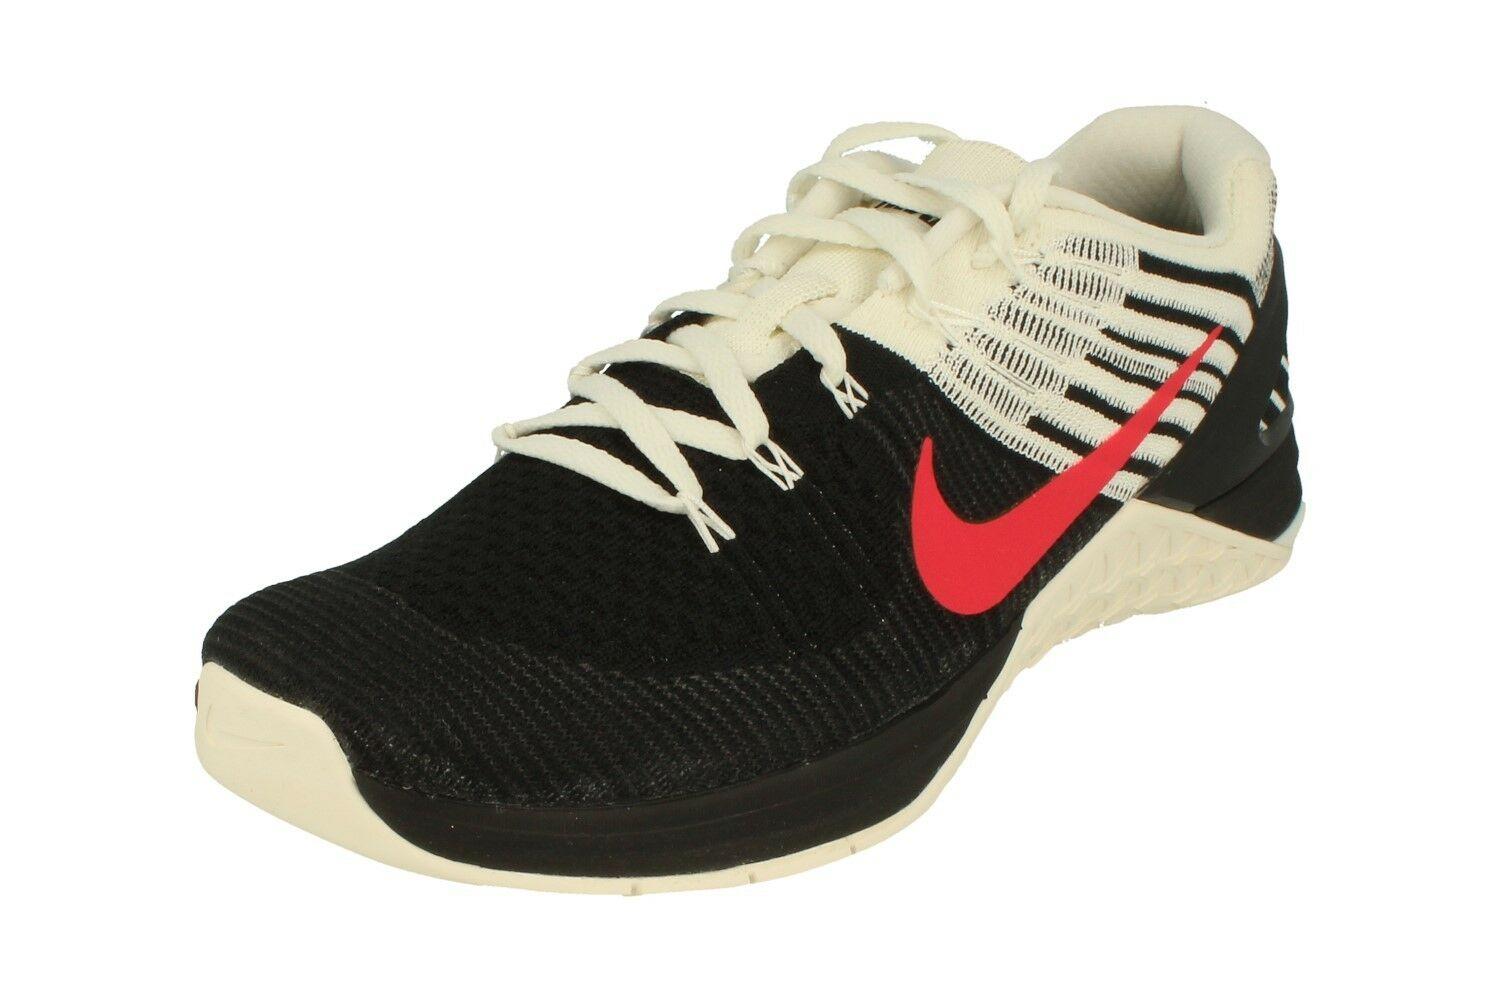 Nike Metcon Dsx Flyknit Prem Shoes Mens Running Trainers 881555 Sneakers Shoes Prem 002 d95de6